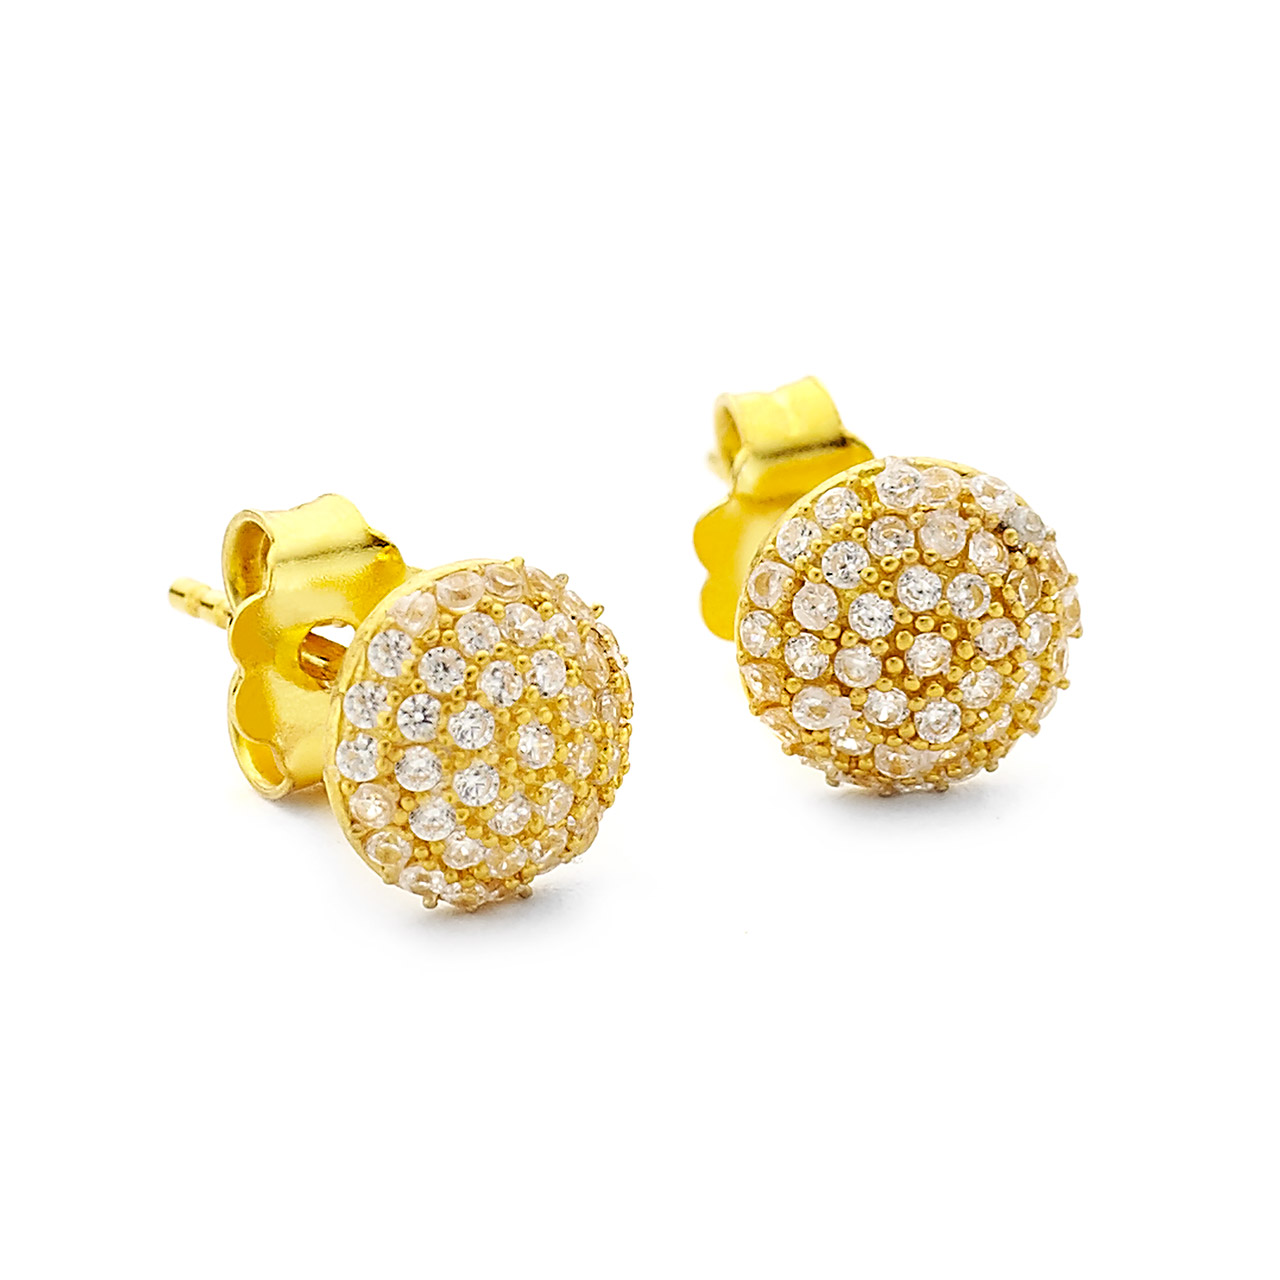 8919f3cef Crystal Pave Round Stud Earrings - Gold Vermeil